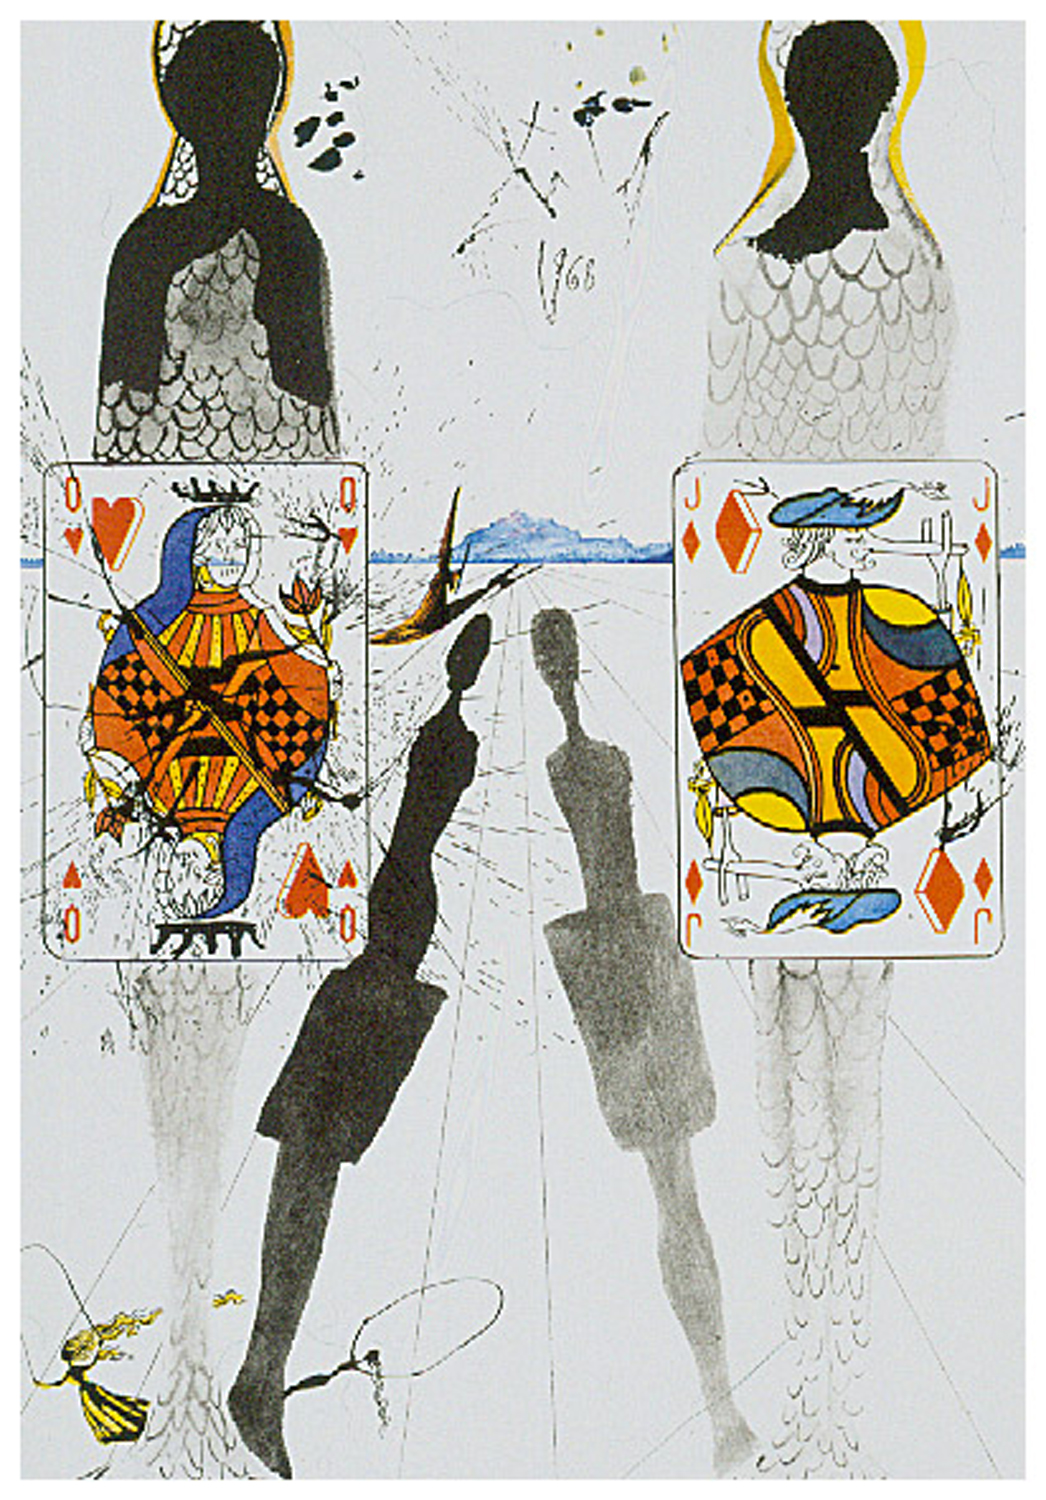 Alice in Wonderland: The Queen's Croquet Ground, heliogravure, 17 x 11.75,  unsigned 889; hc arches, 1969, ML 329